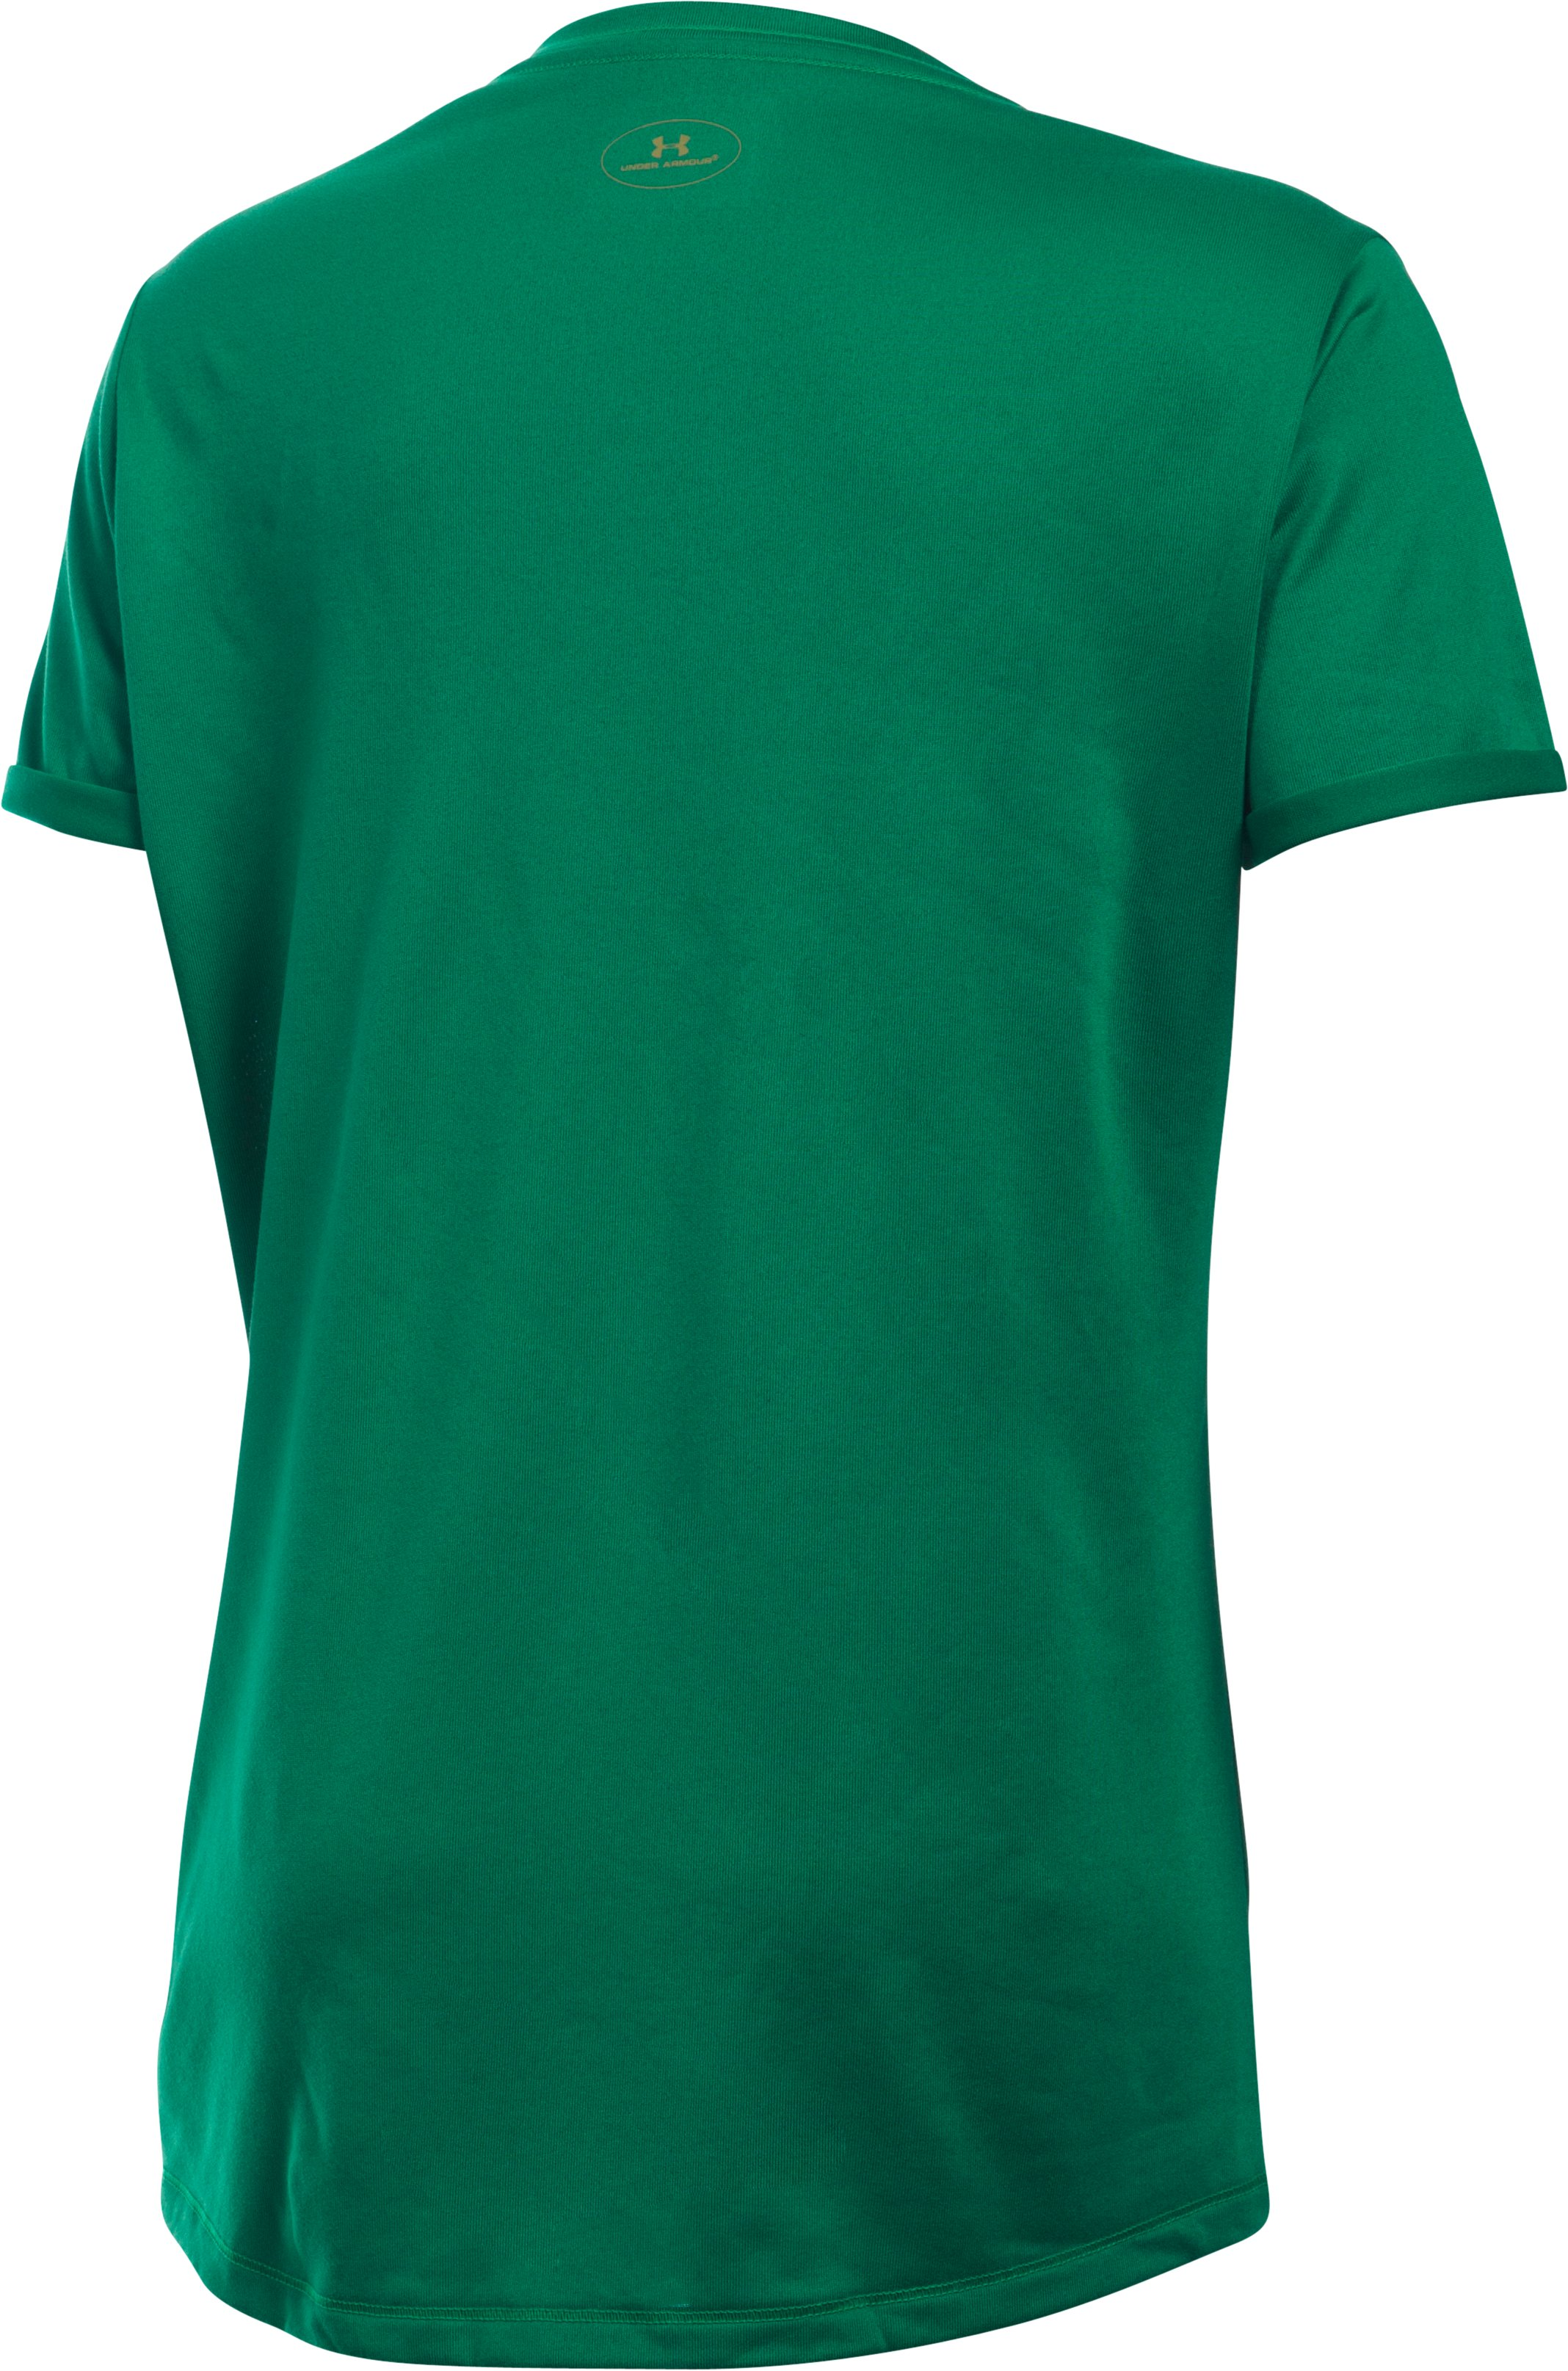 Girls' Notre Dame UA Tech™ T-Shirt, Team Kelly Green